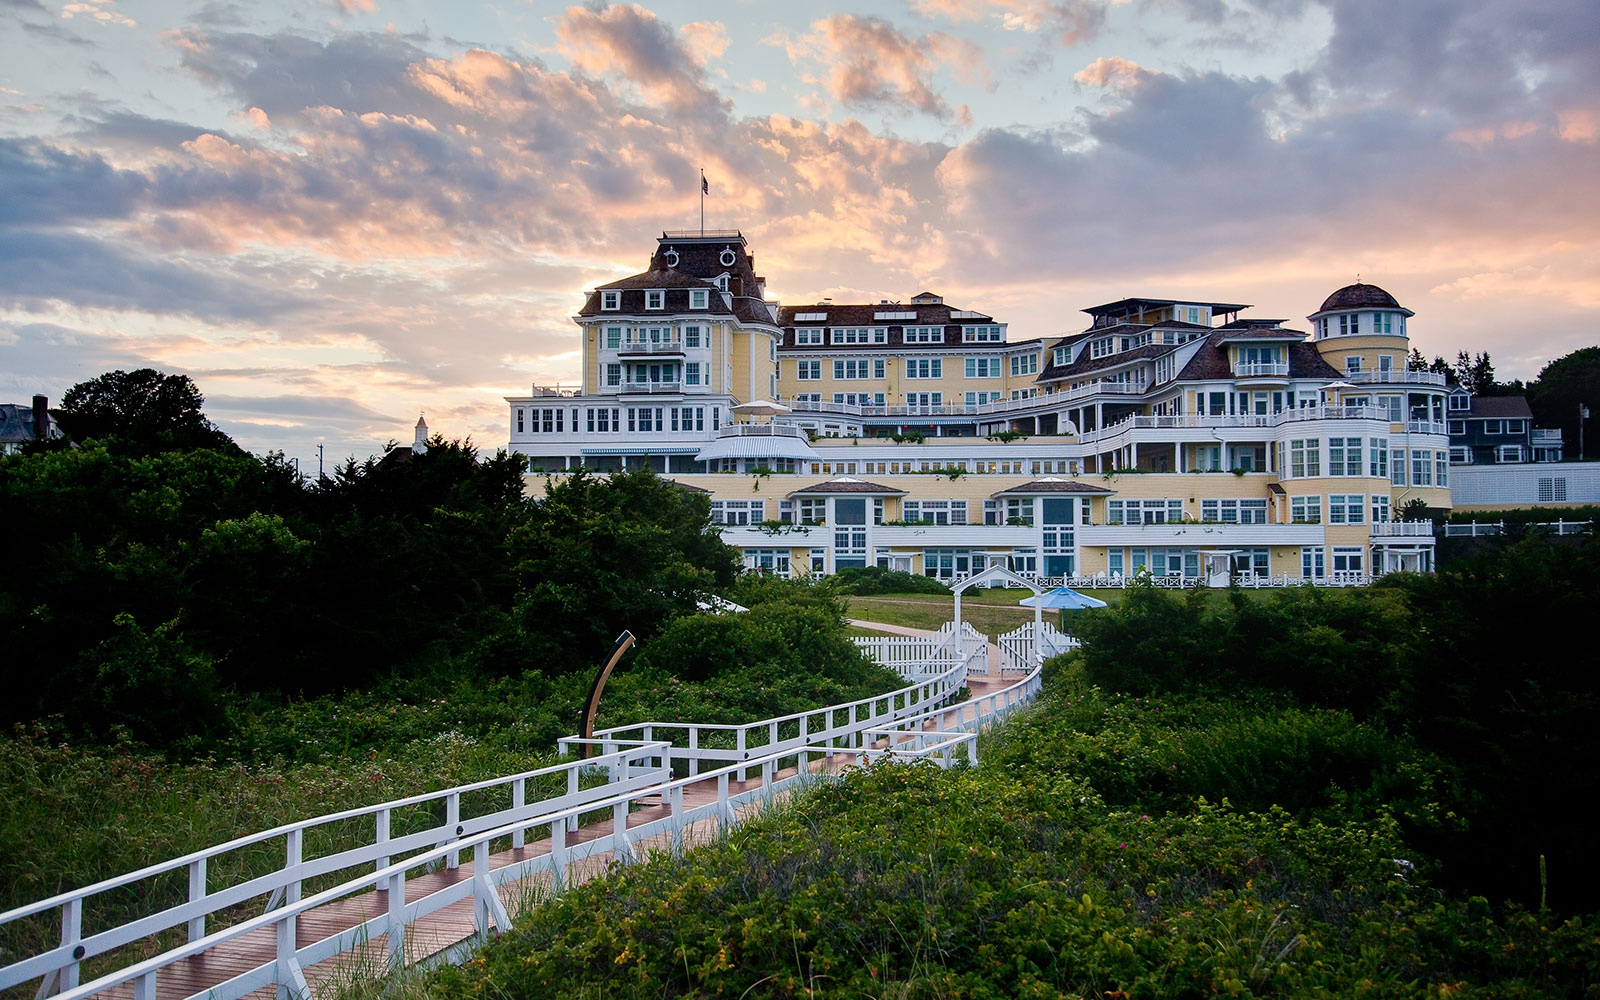 No. 6: Ocean House, Watch Hill, Rhode Island